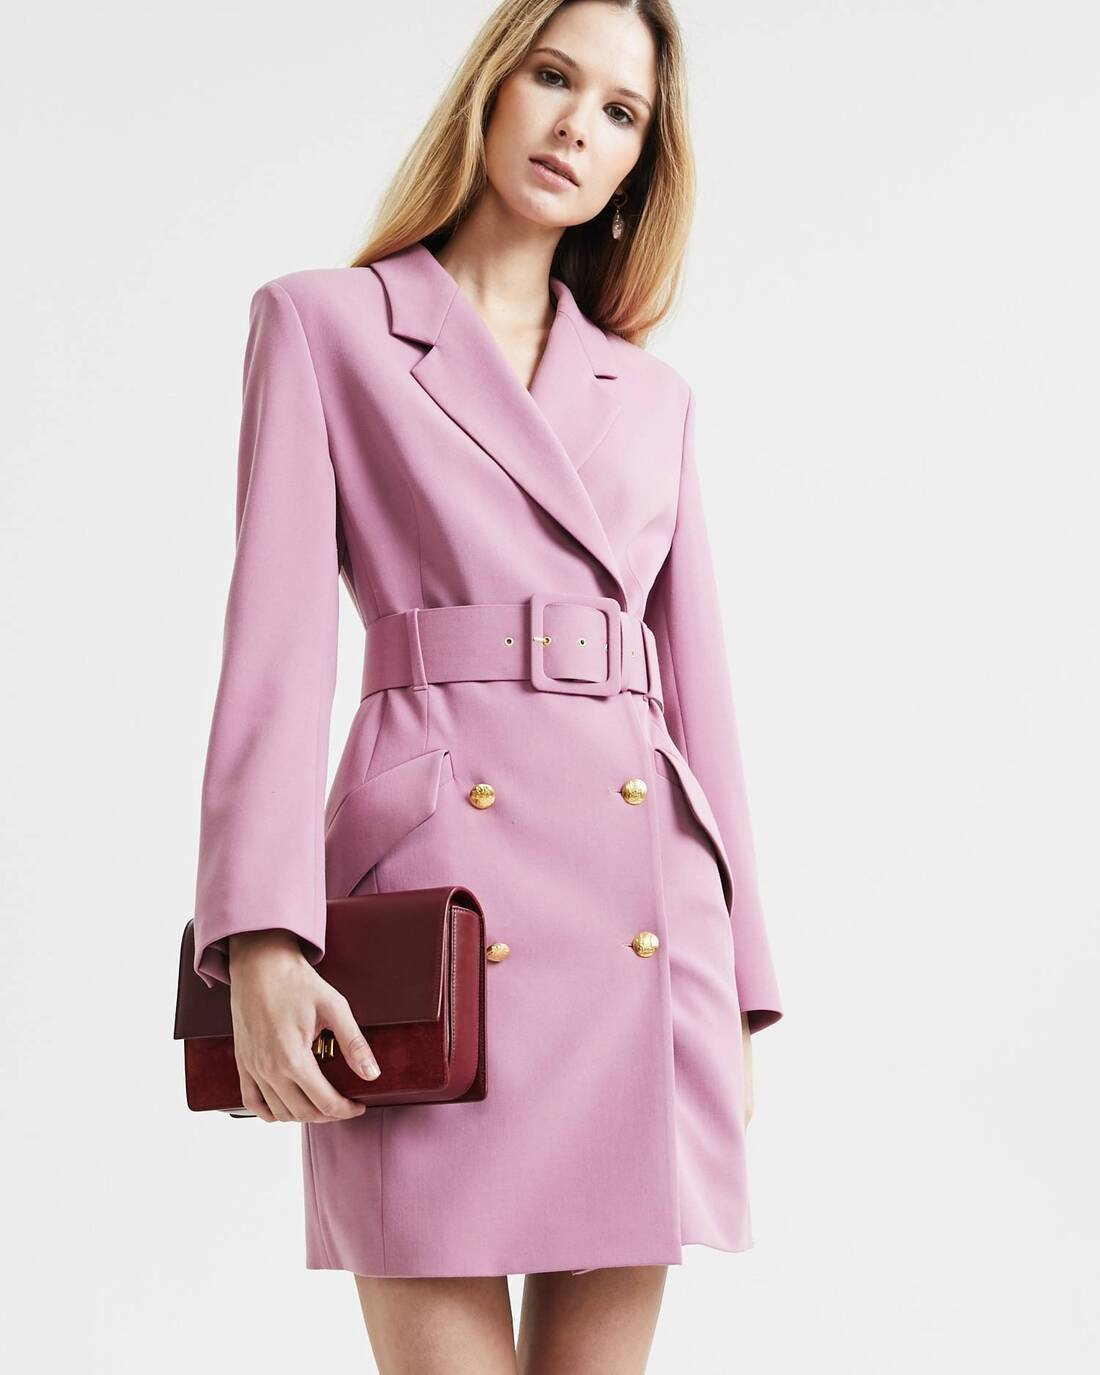 Belted suit dress